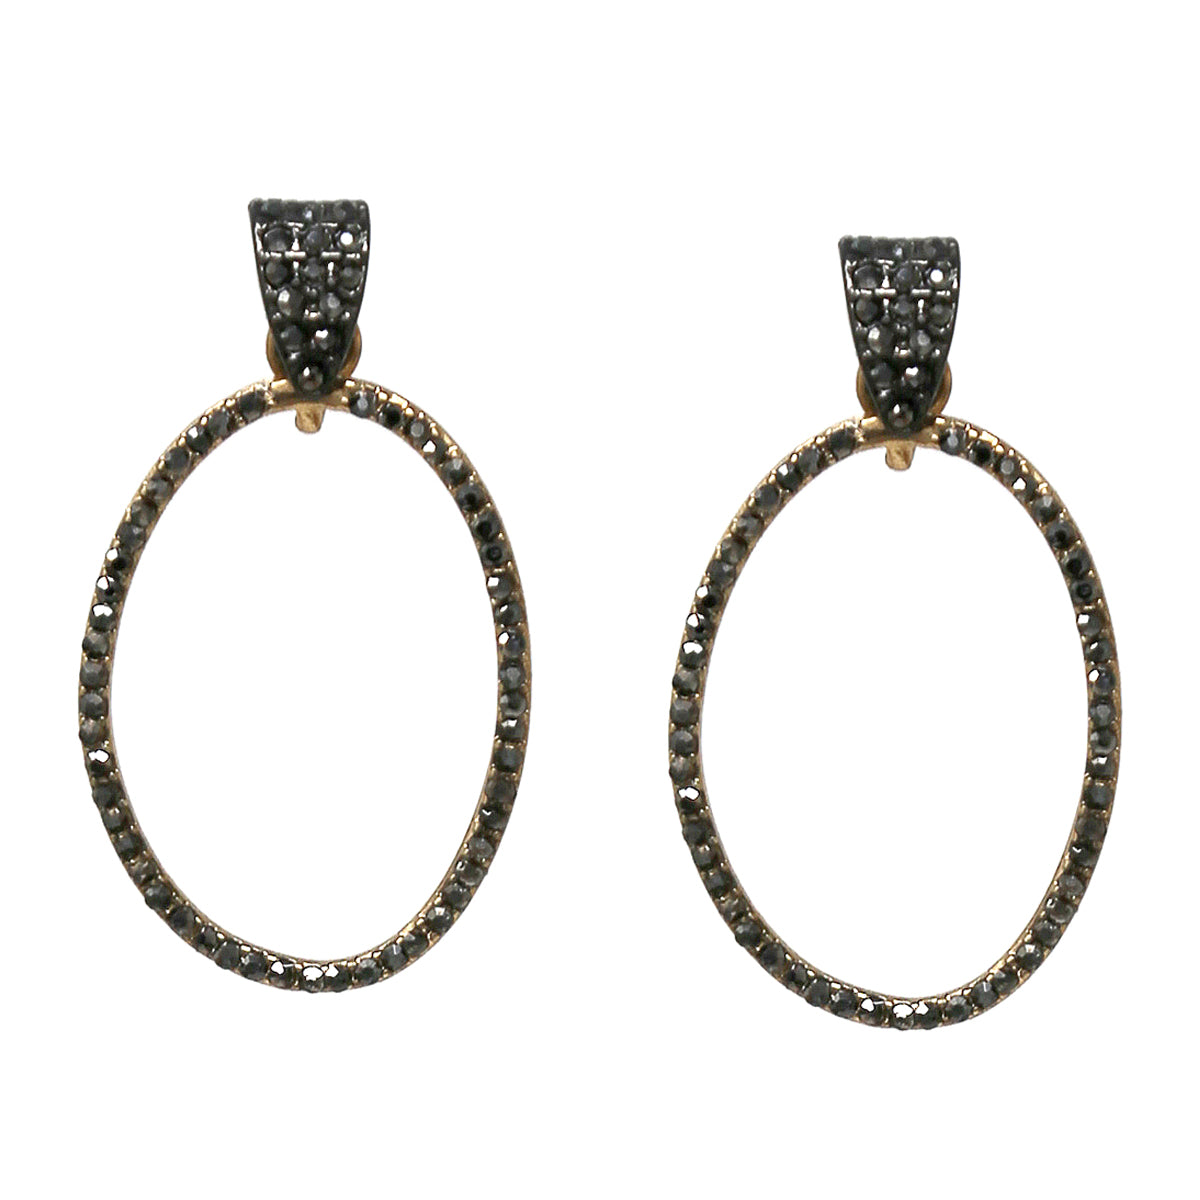 Rhinestone Pave Oval Hoop Drop Earrings